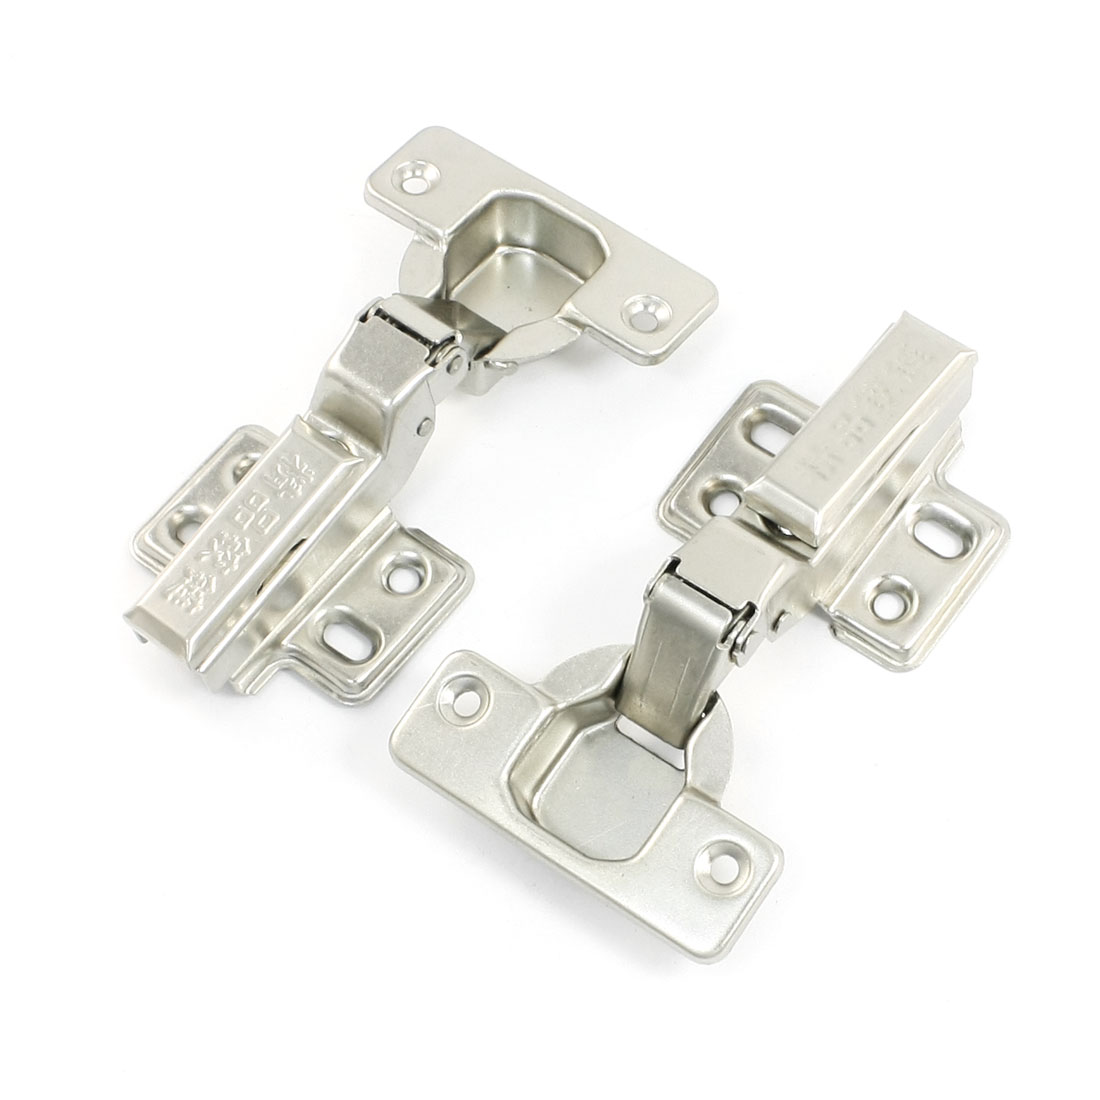 2pcs Metal 90 Degree Open Insert Style Concealed Kitchen Cabinet Door Hinge 4.1""